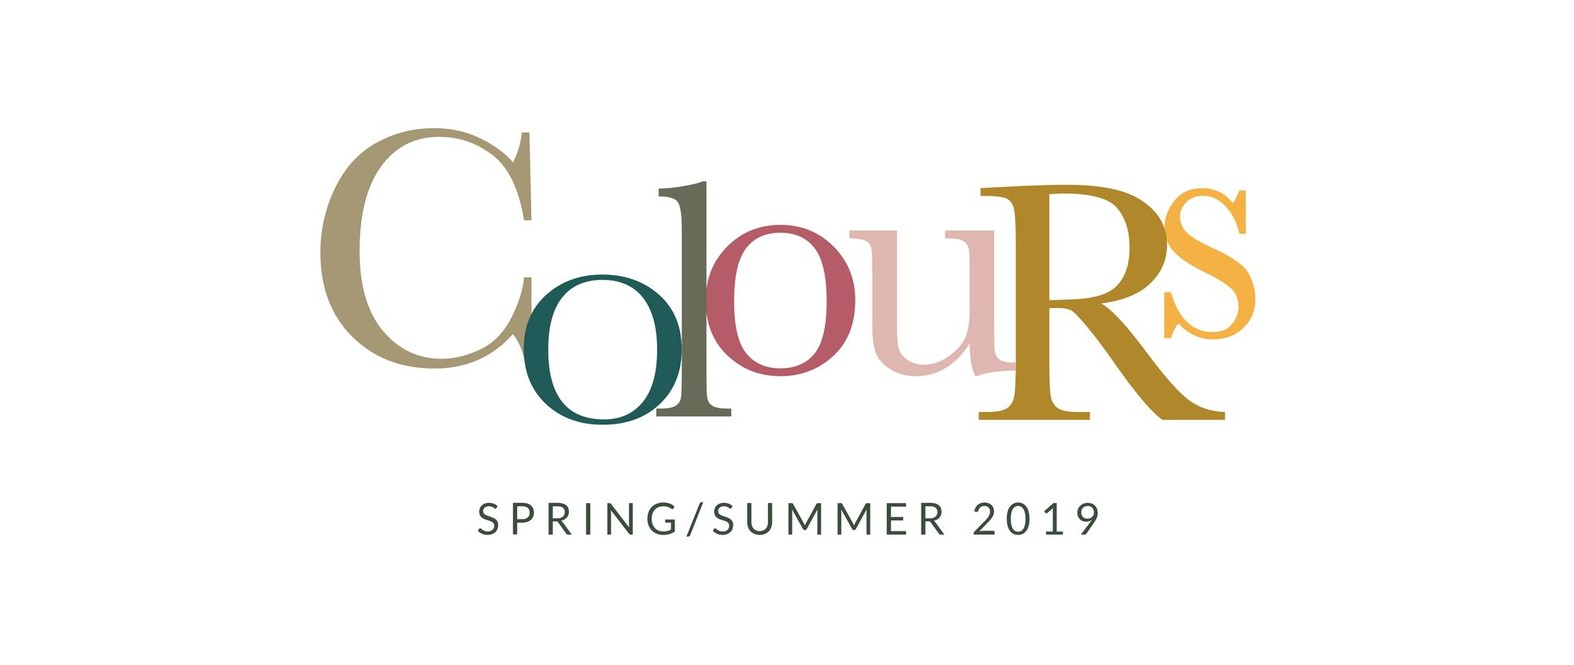 c65aa38b7b6 Fashion Trend for Women  Colours for Spring Summer 2019